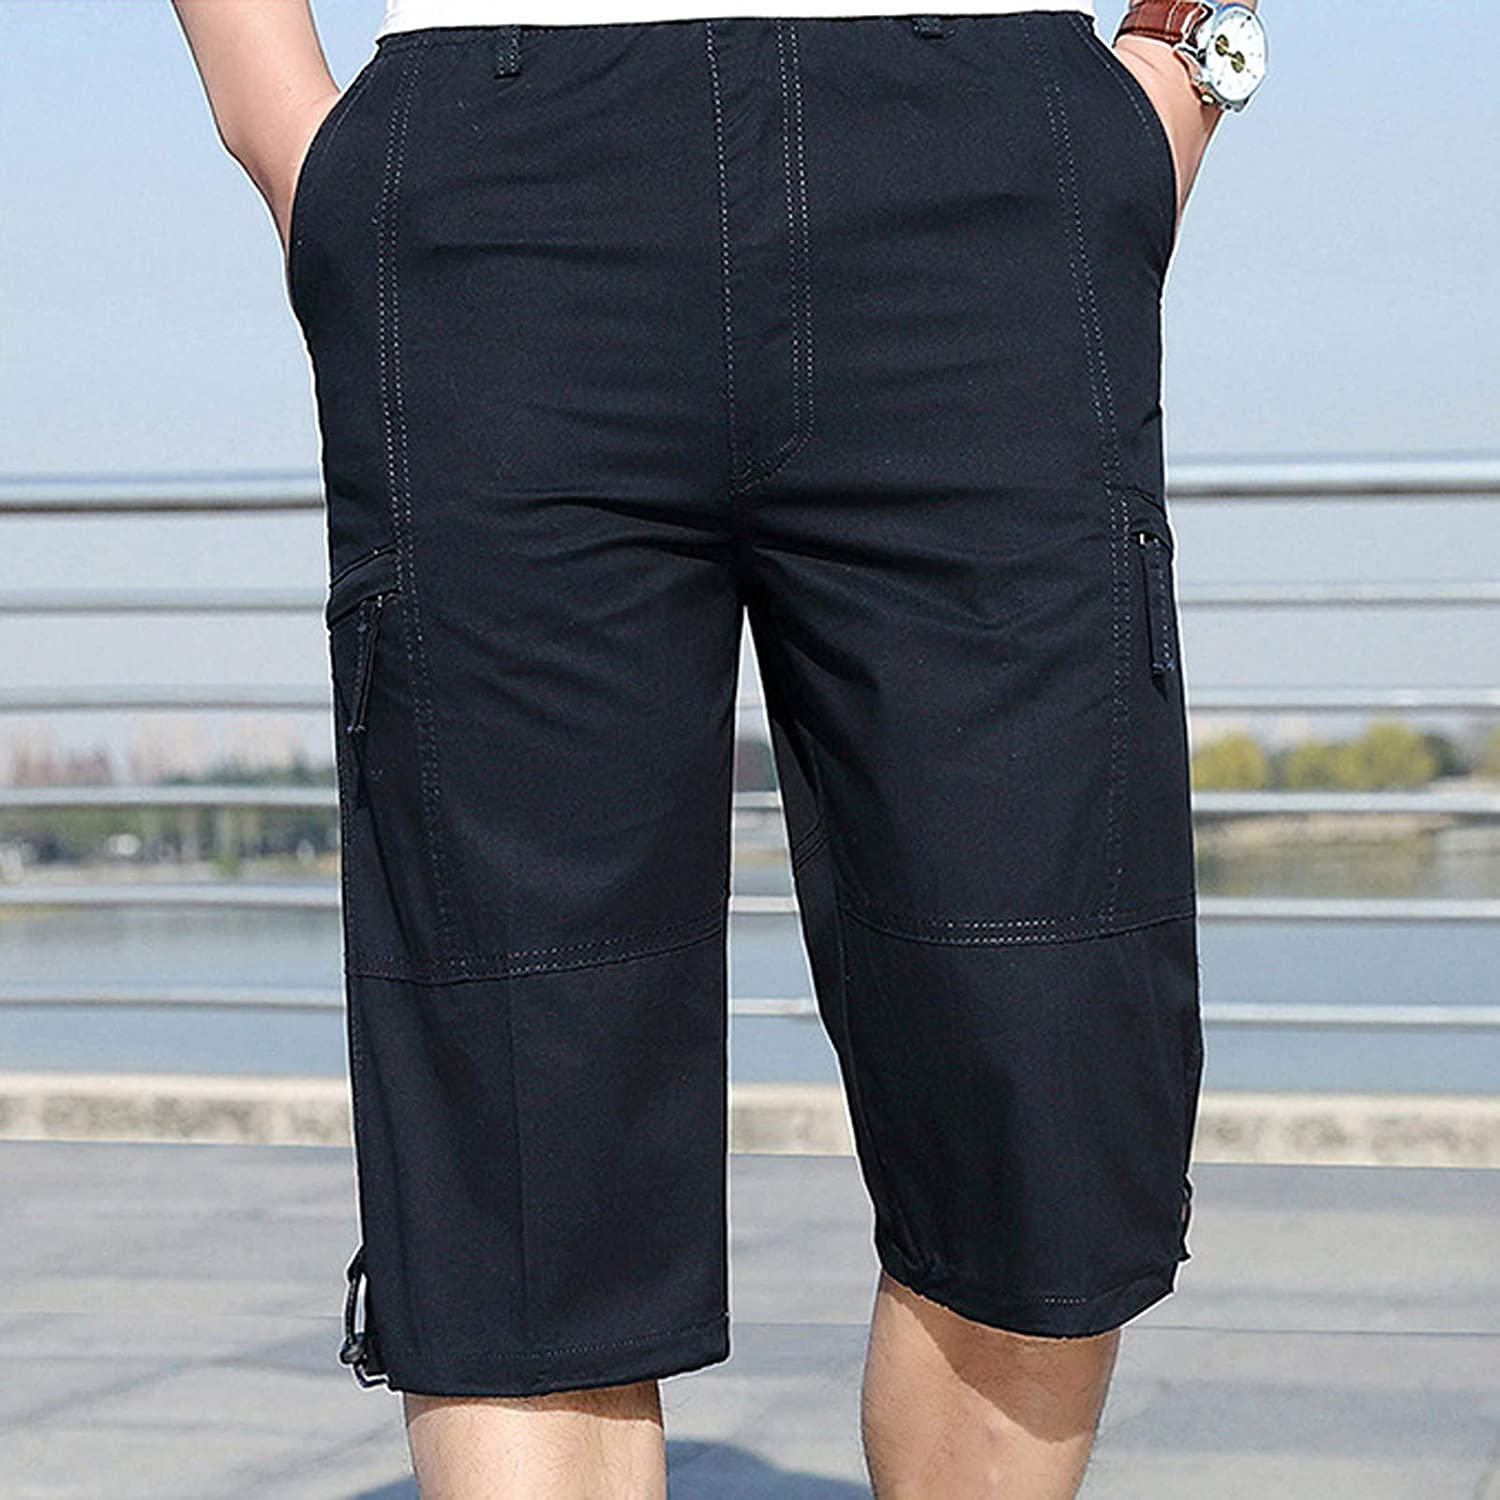 Yhjh Men's Cargo Shorts Over The Knee Messenger Short Mens Fashion Zipper Outdoors Pocket Shorts Sports Overalls Casual Pants